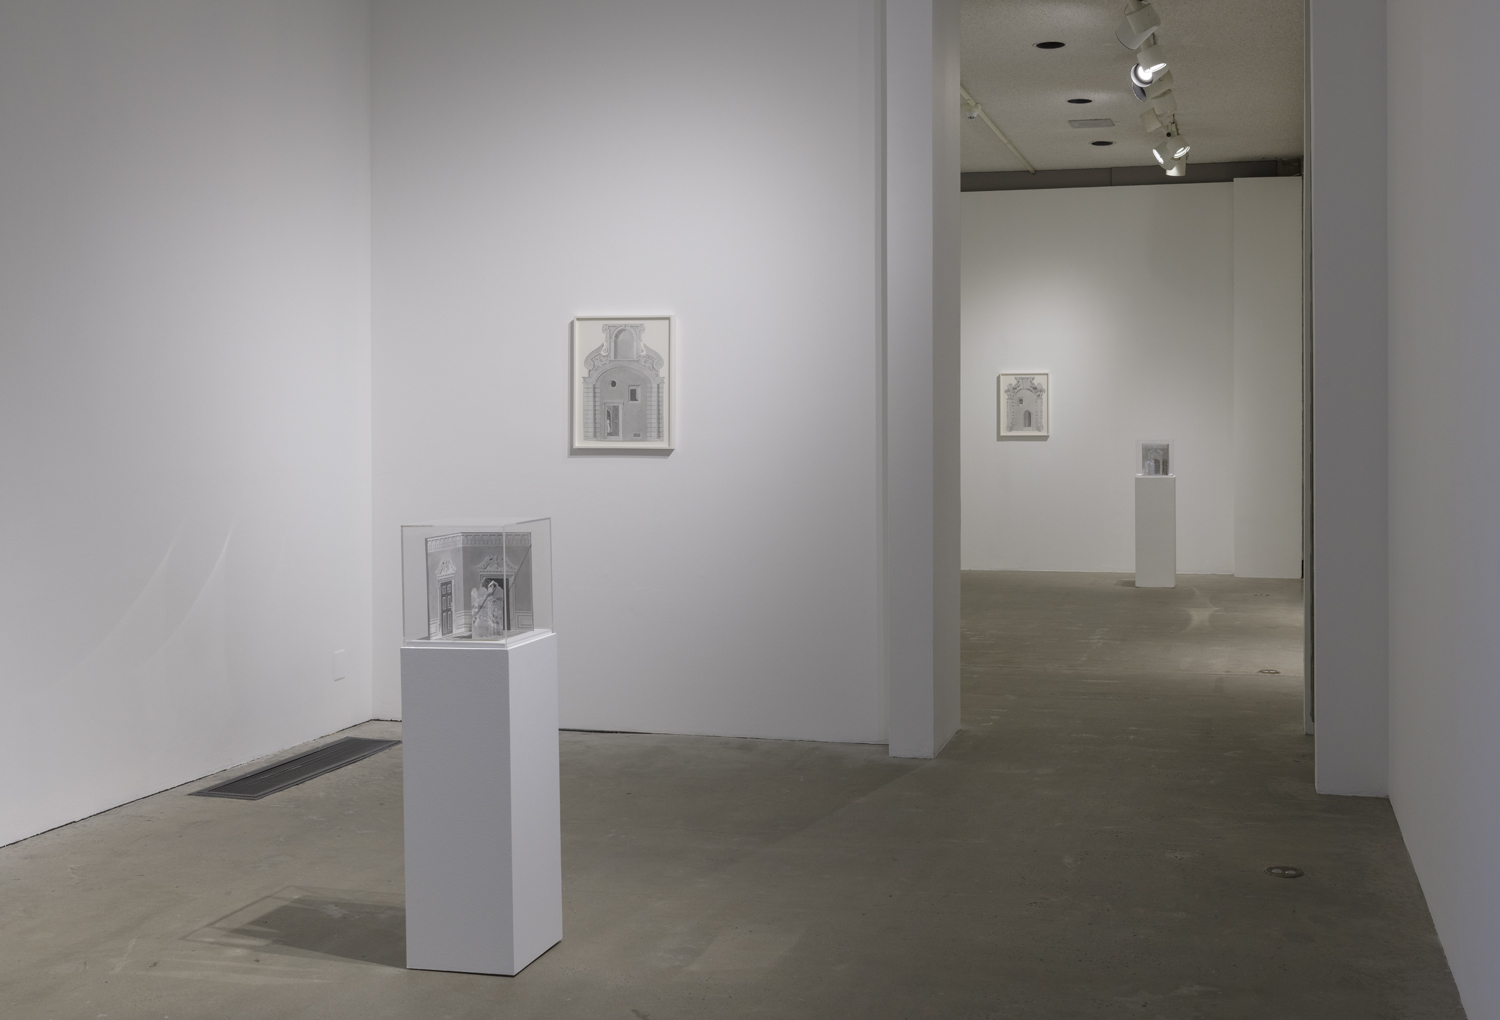 In this art installation by the artist Milano Chow, there is one artwork on a white pedestal with a plexiglass cover. Under the cover is a small graphite sculptural work featuring an architectural space and an upright partition with a figure peeking out from behind it. Behind this artwork is another graphite drawing of a different architectural space hanging on a wall. There are two other similar artworks placed in the next room behind these works.